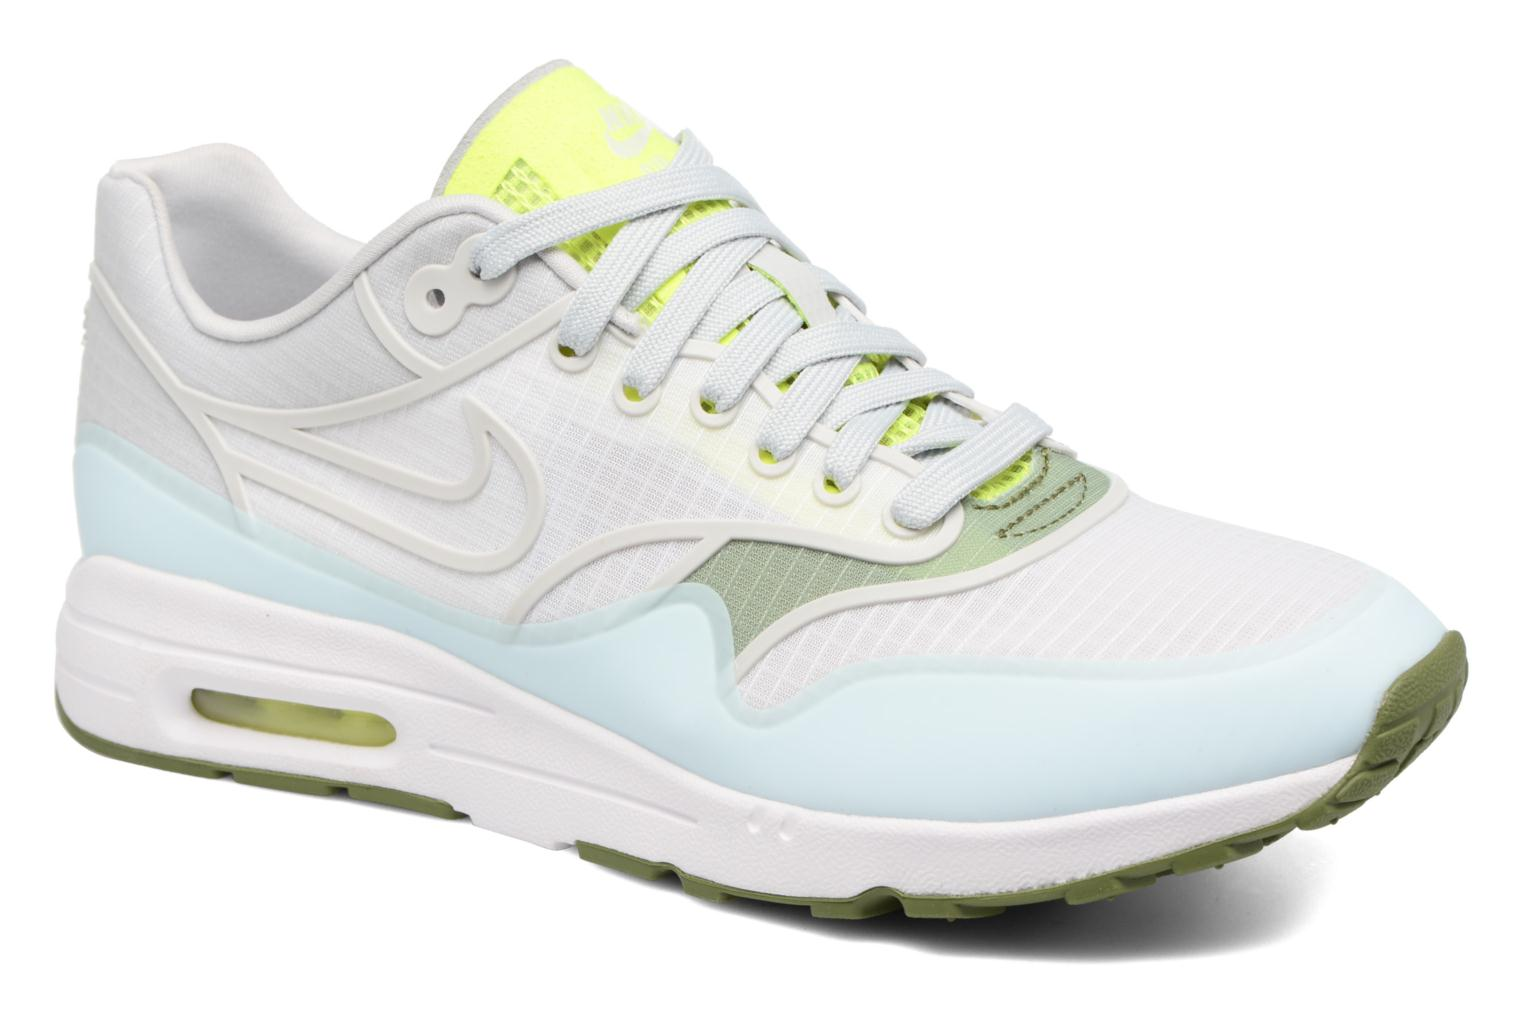 W Nike Air Max 1 Ultra 2.0 Si White/Pure Platinum-Volt-Palm Green